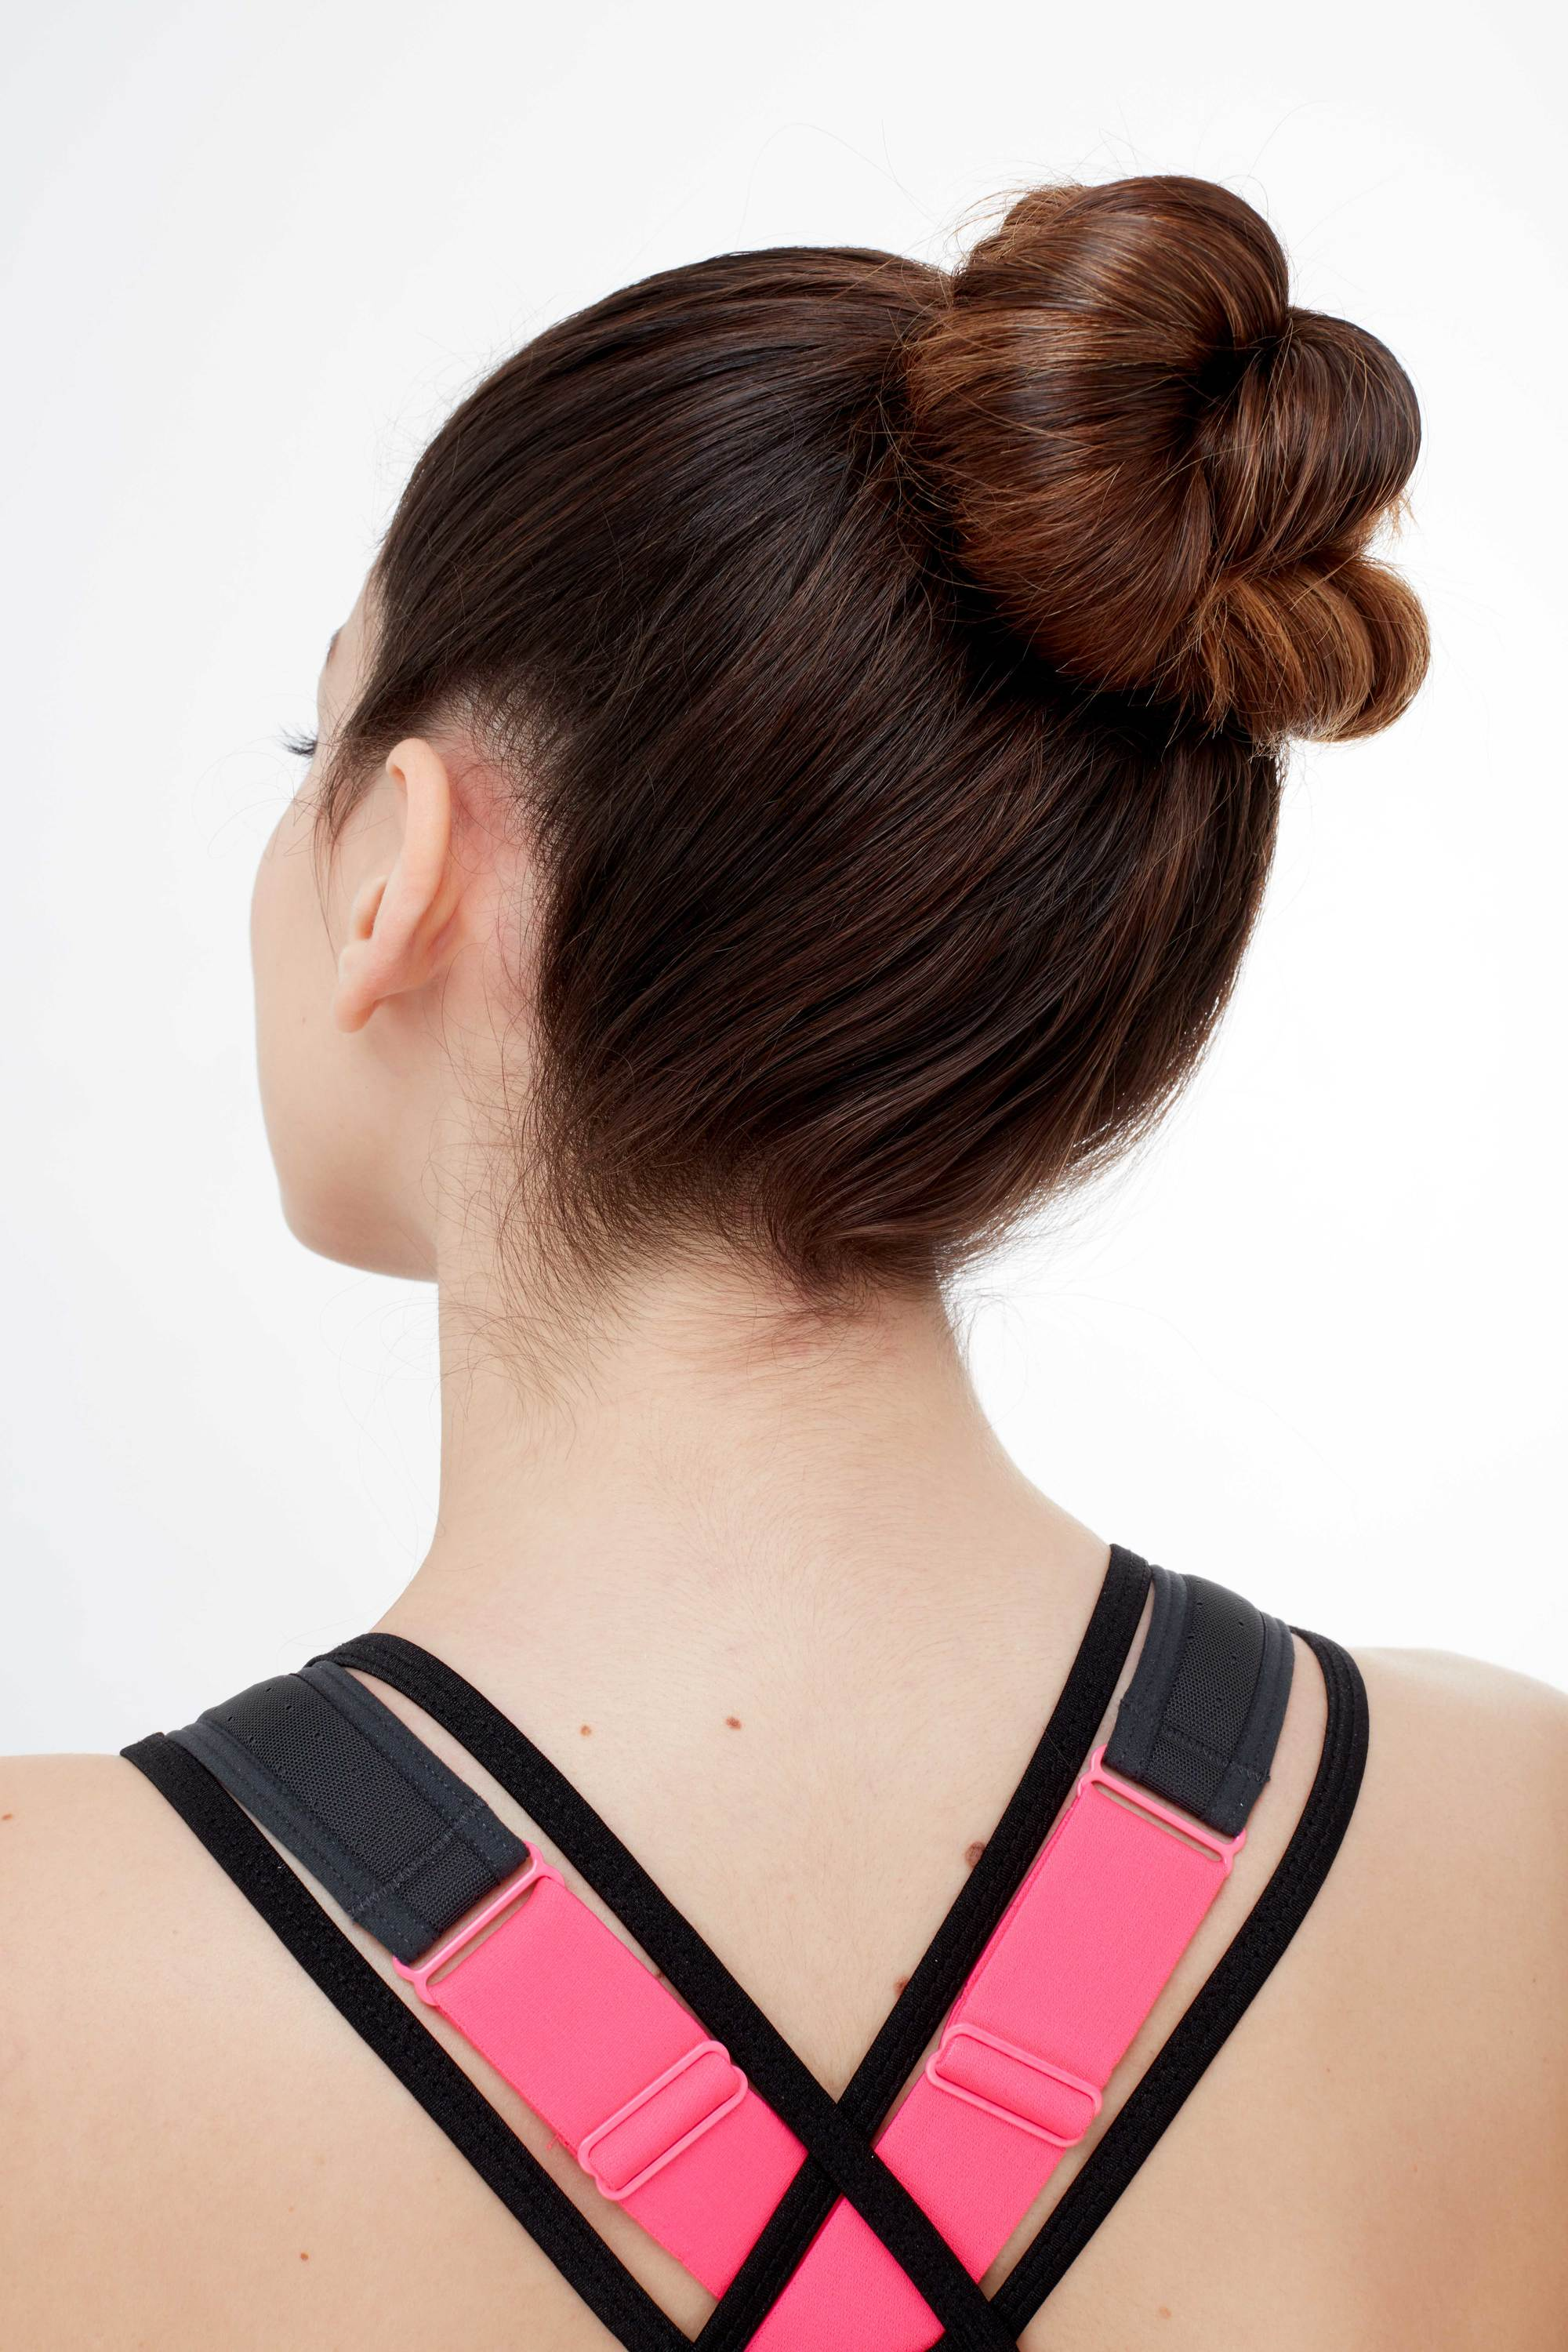 Gym hairstyles for thick hair: Back shot of a brunette model with a twisted high bun, wearing a sporty strappy top and sports bra